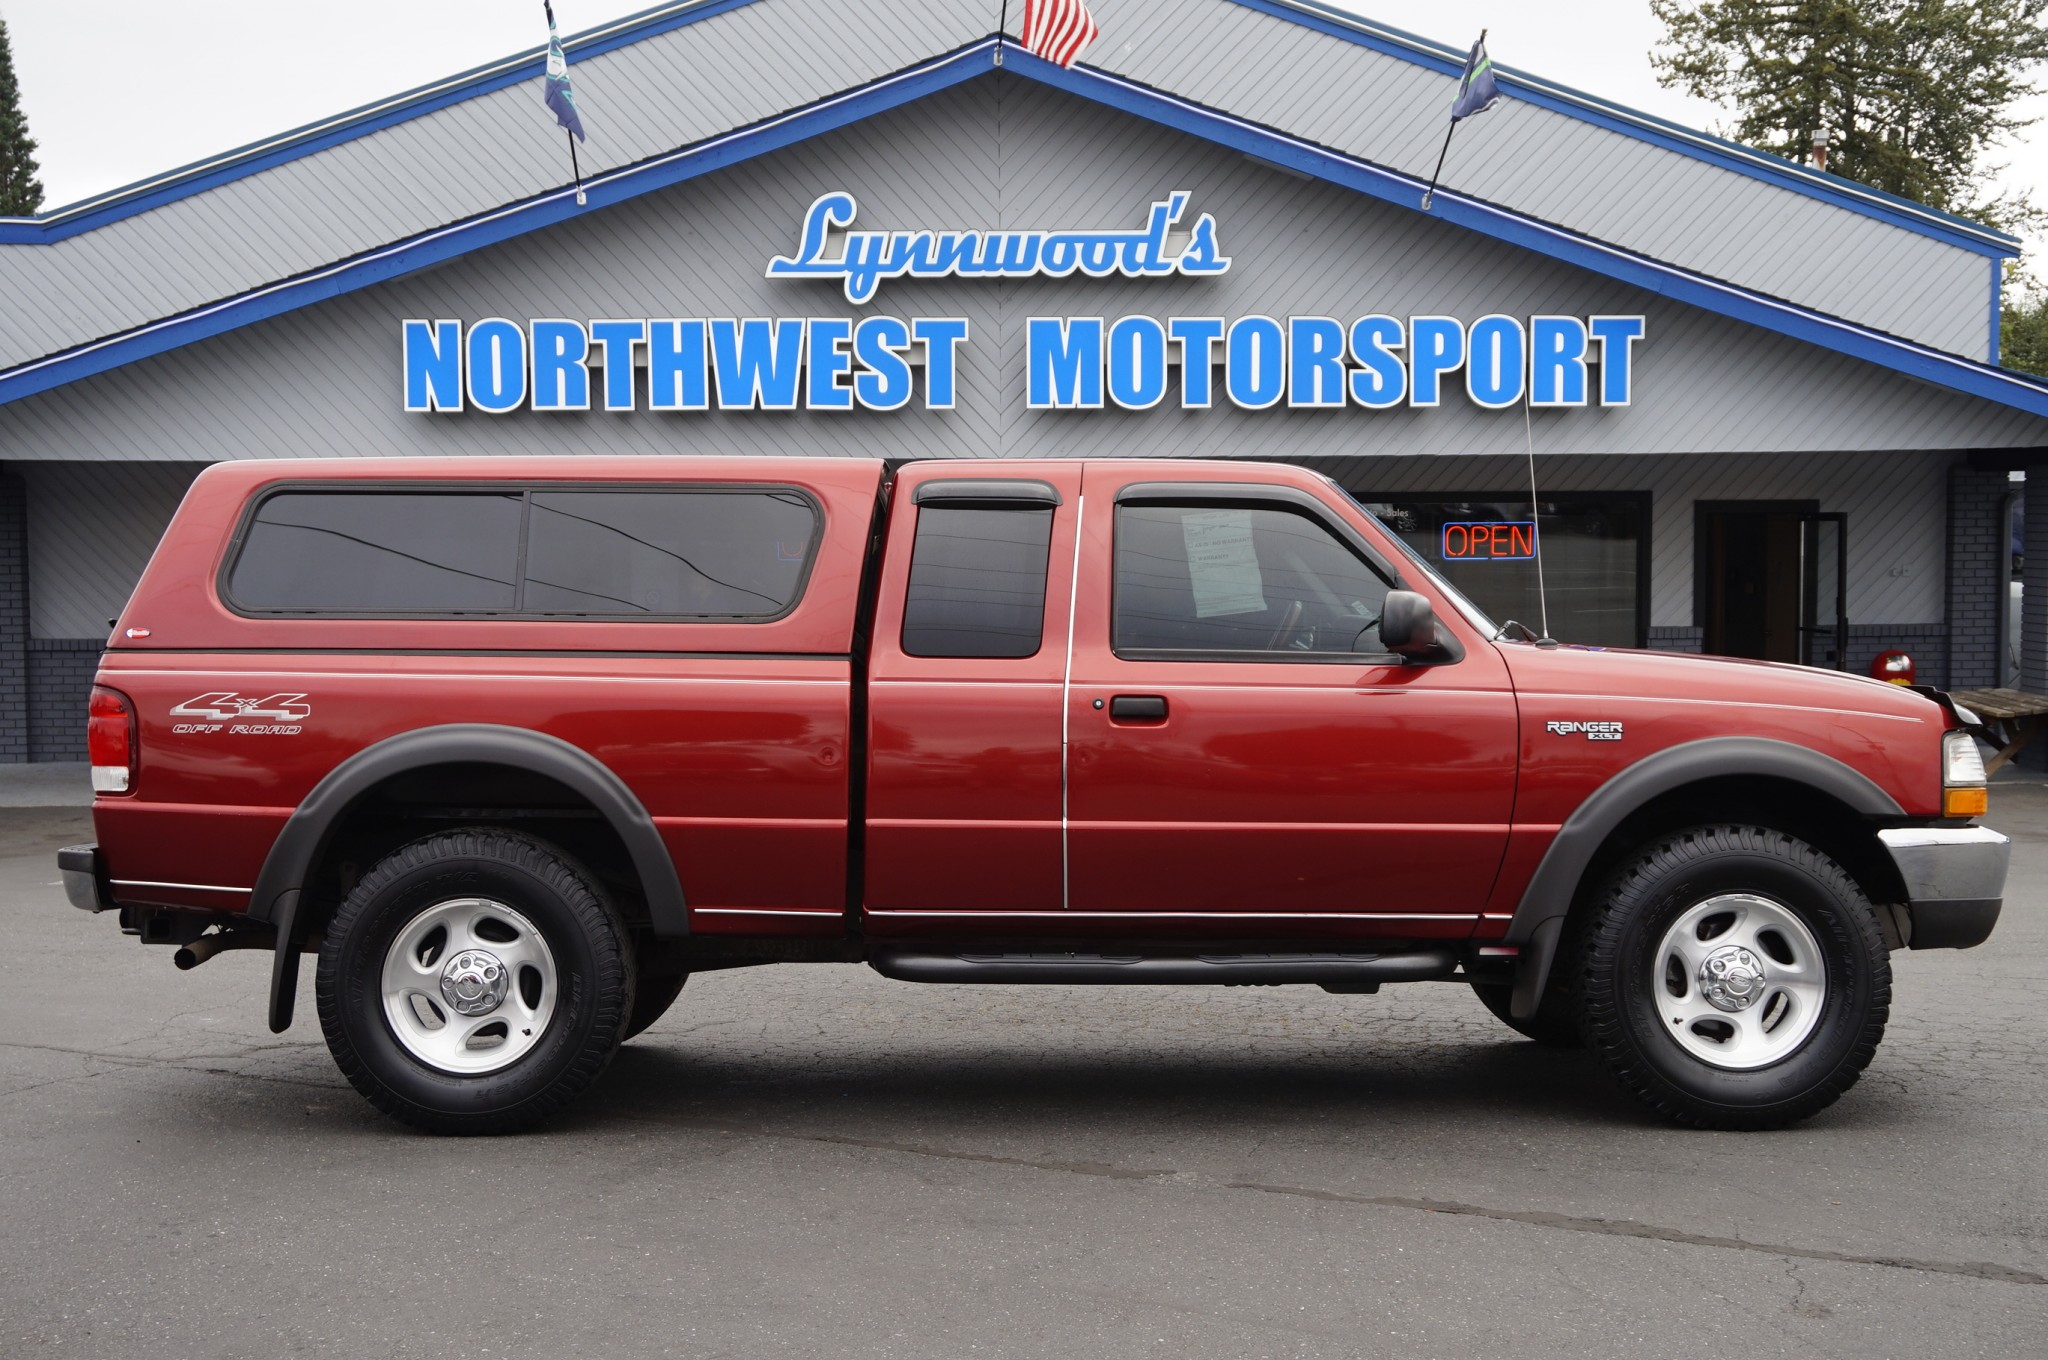 & Used 2000 Ford Ranger XLT 4x4 Truck For Sale - 33709A